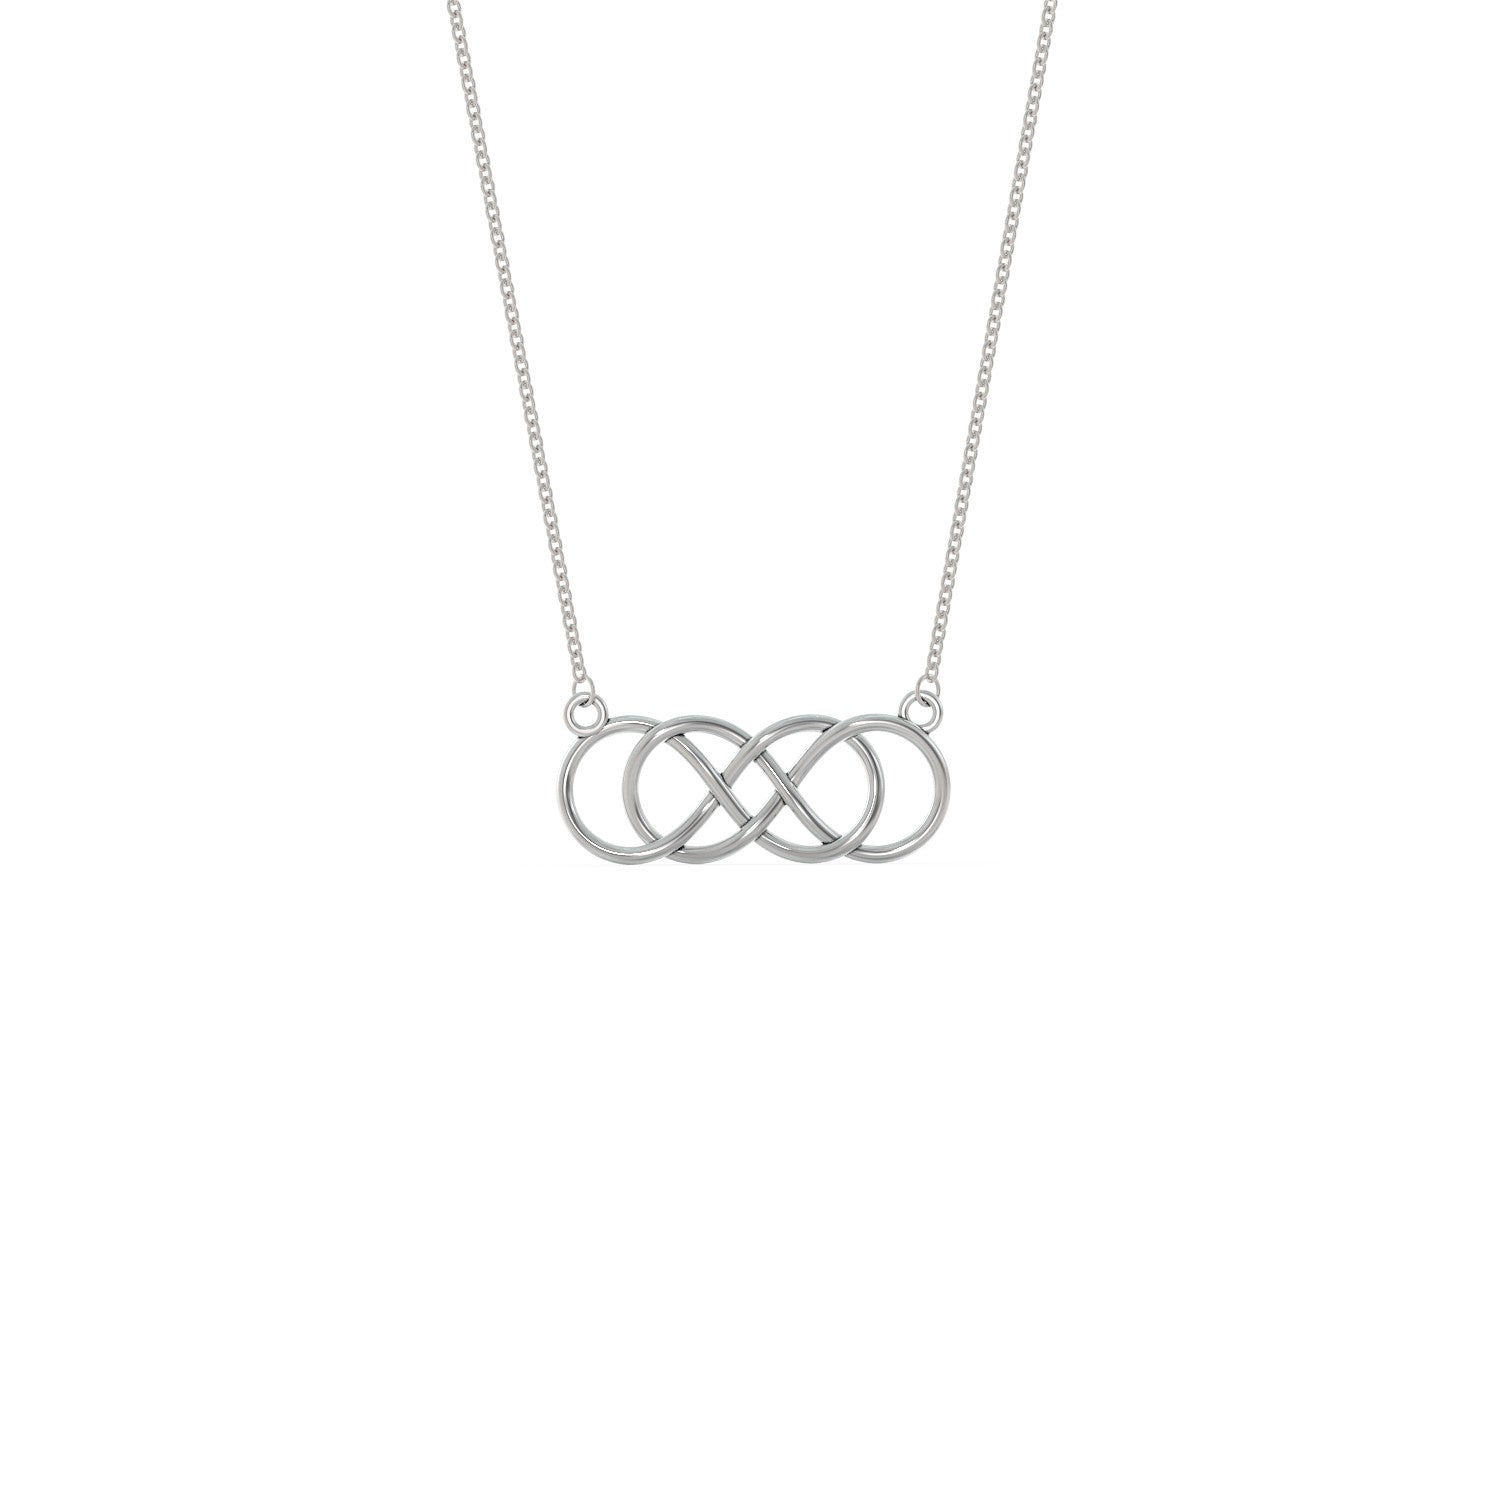 Double infinity necklace shineon double infinity necklace aloadofball Image collections